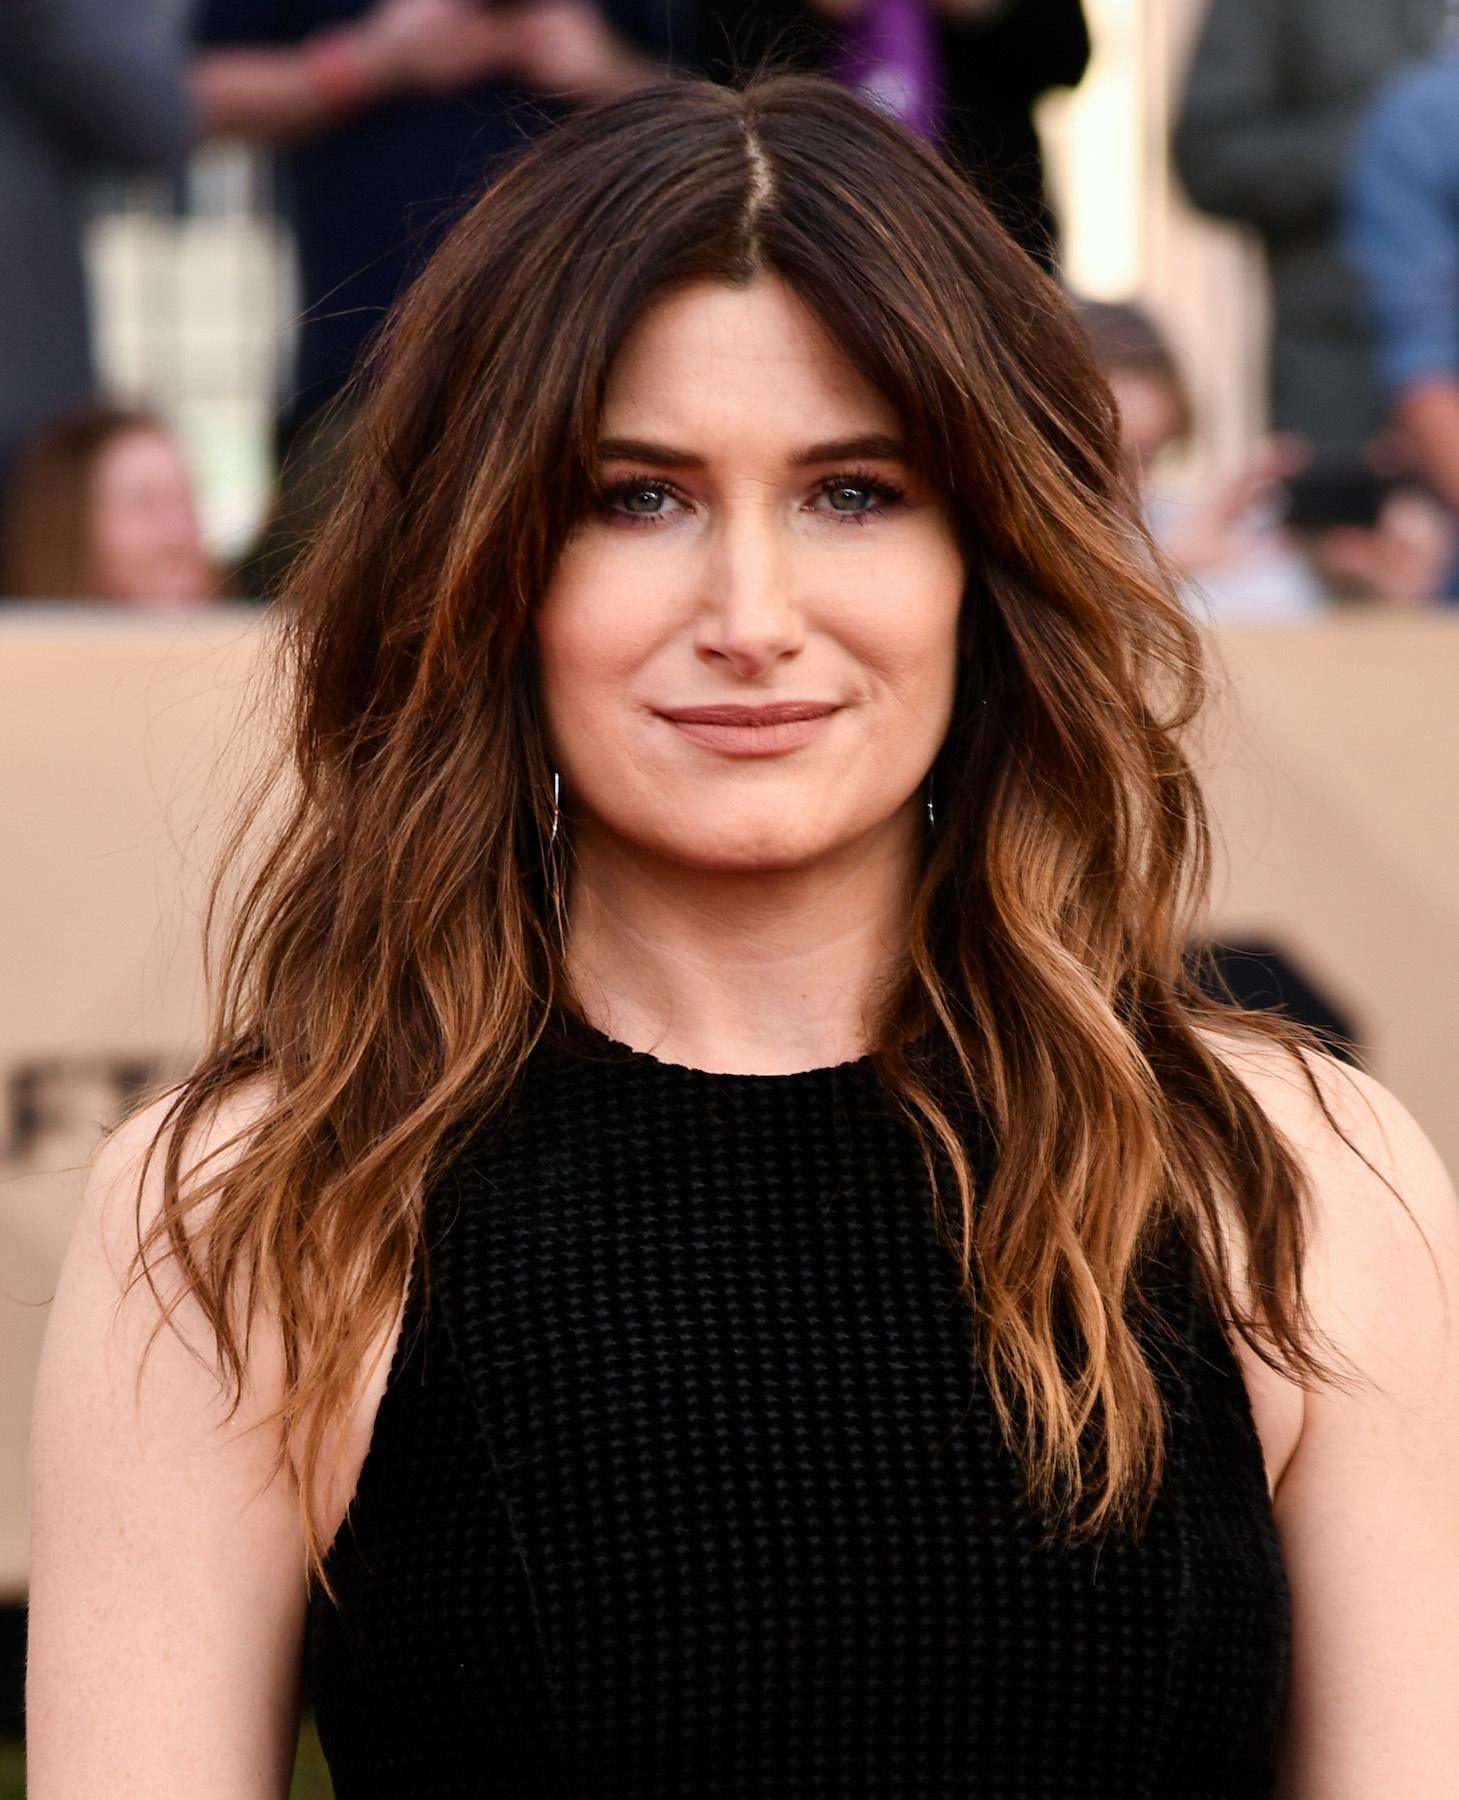 Kathryn Hahn dengan model rambut shaggy panjang beach waves